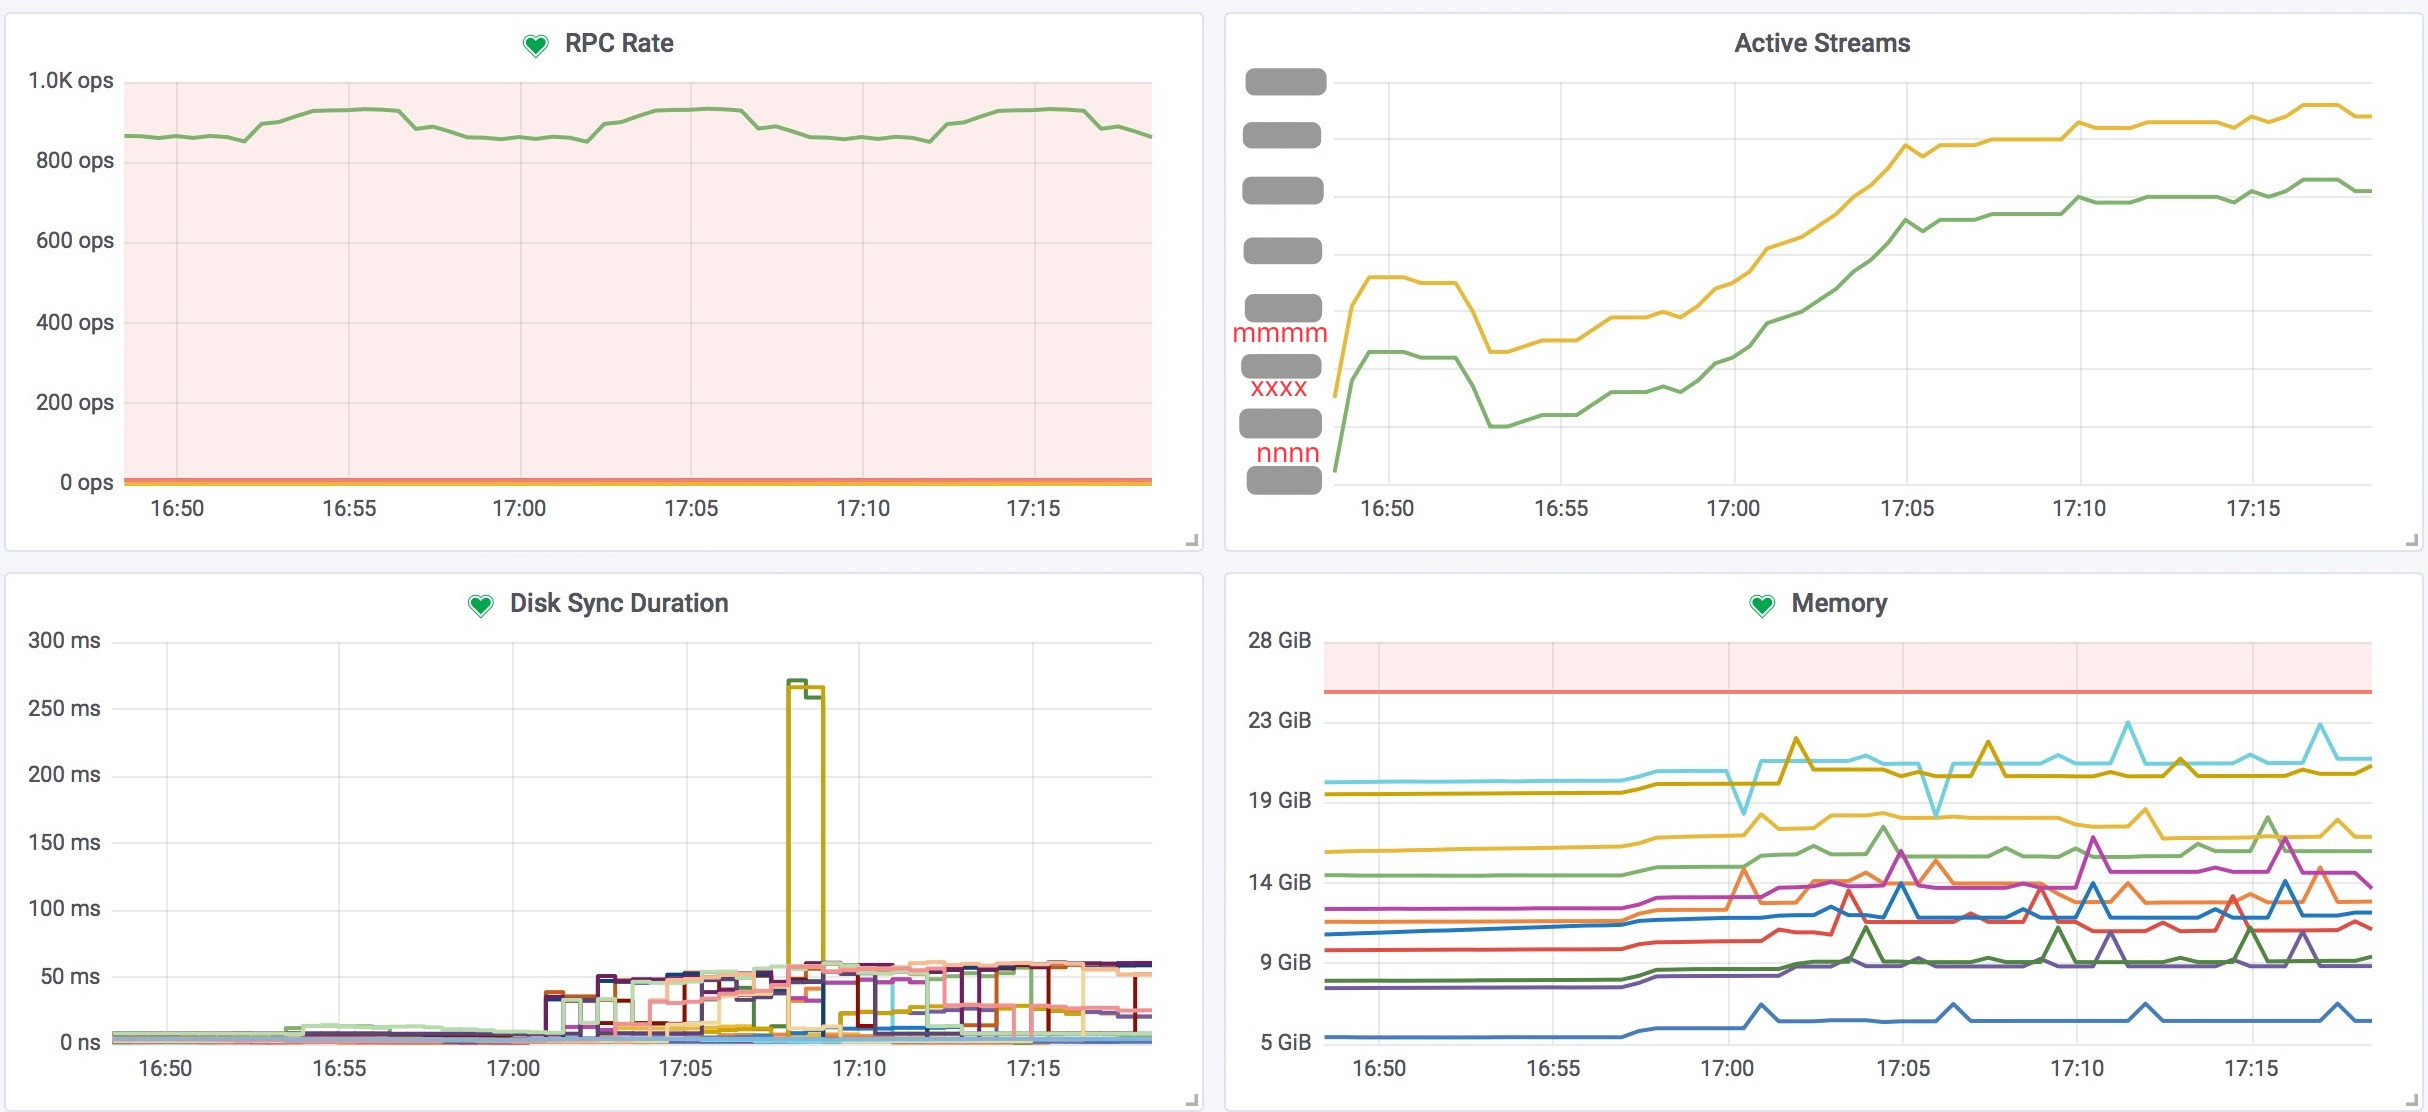 etcd-Grafana-Watcher-Monitor